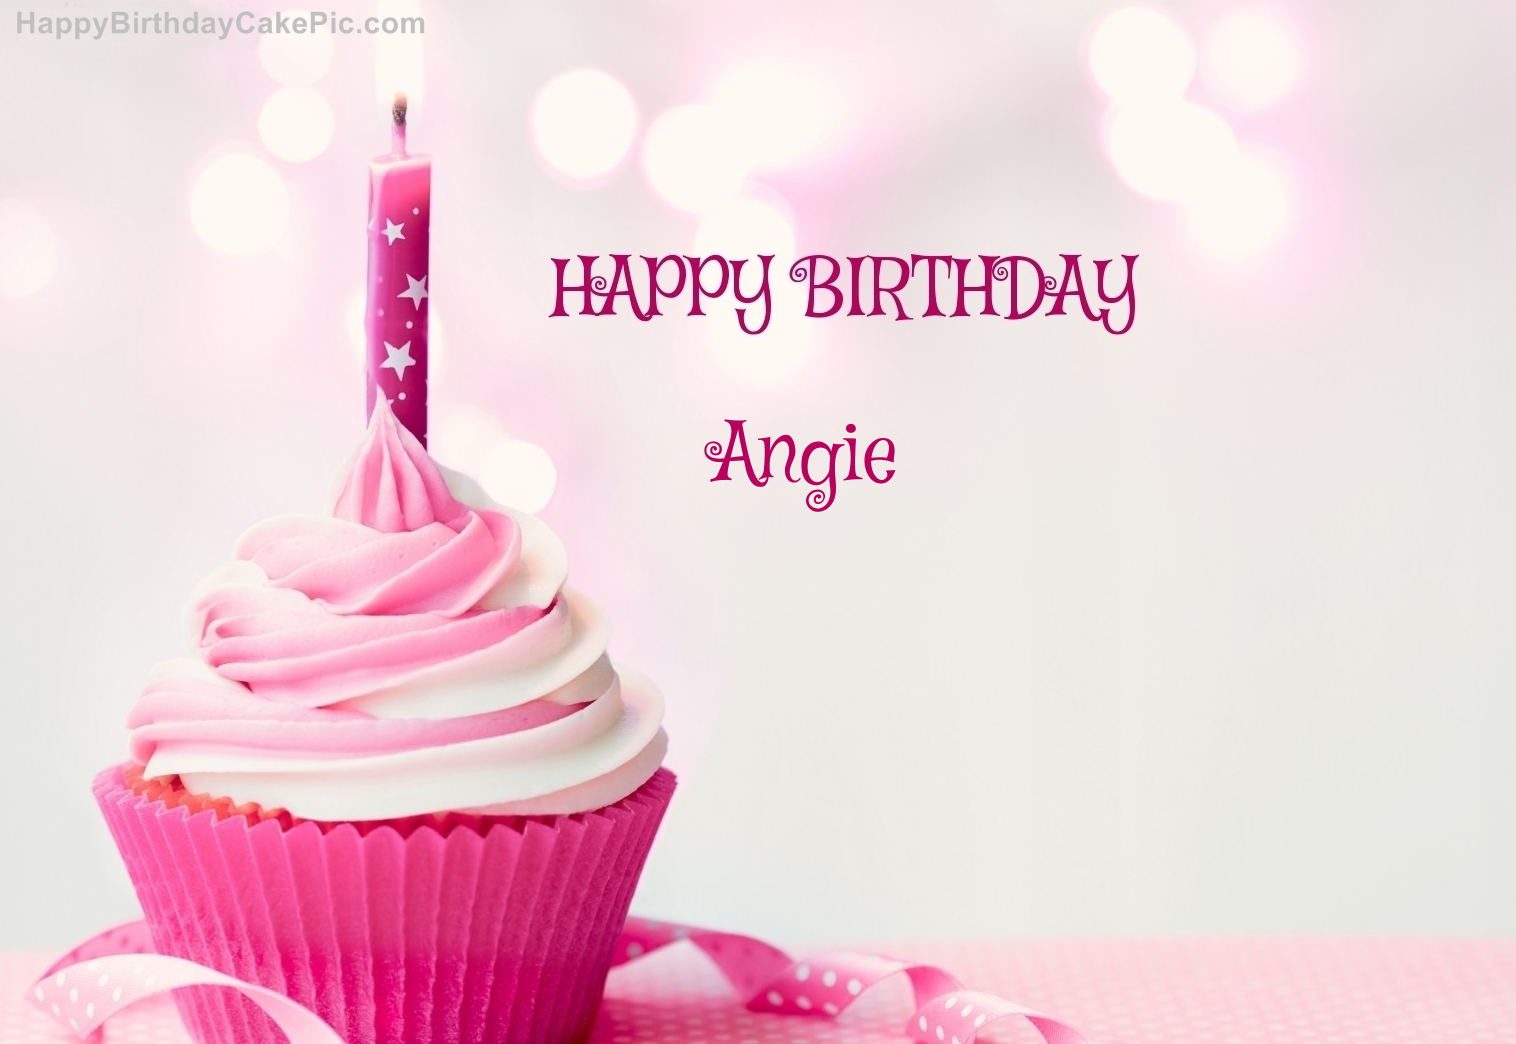 Happy Birthday Cupcake Candle Pink Cake For Angie